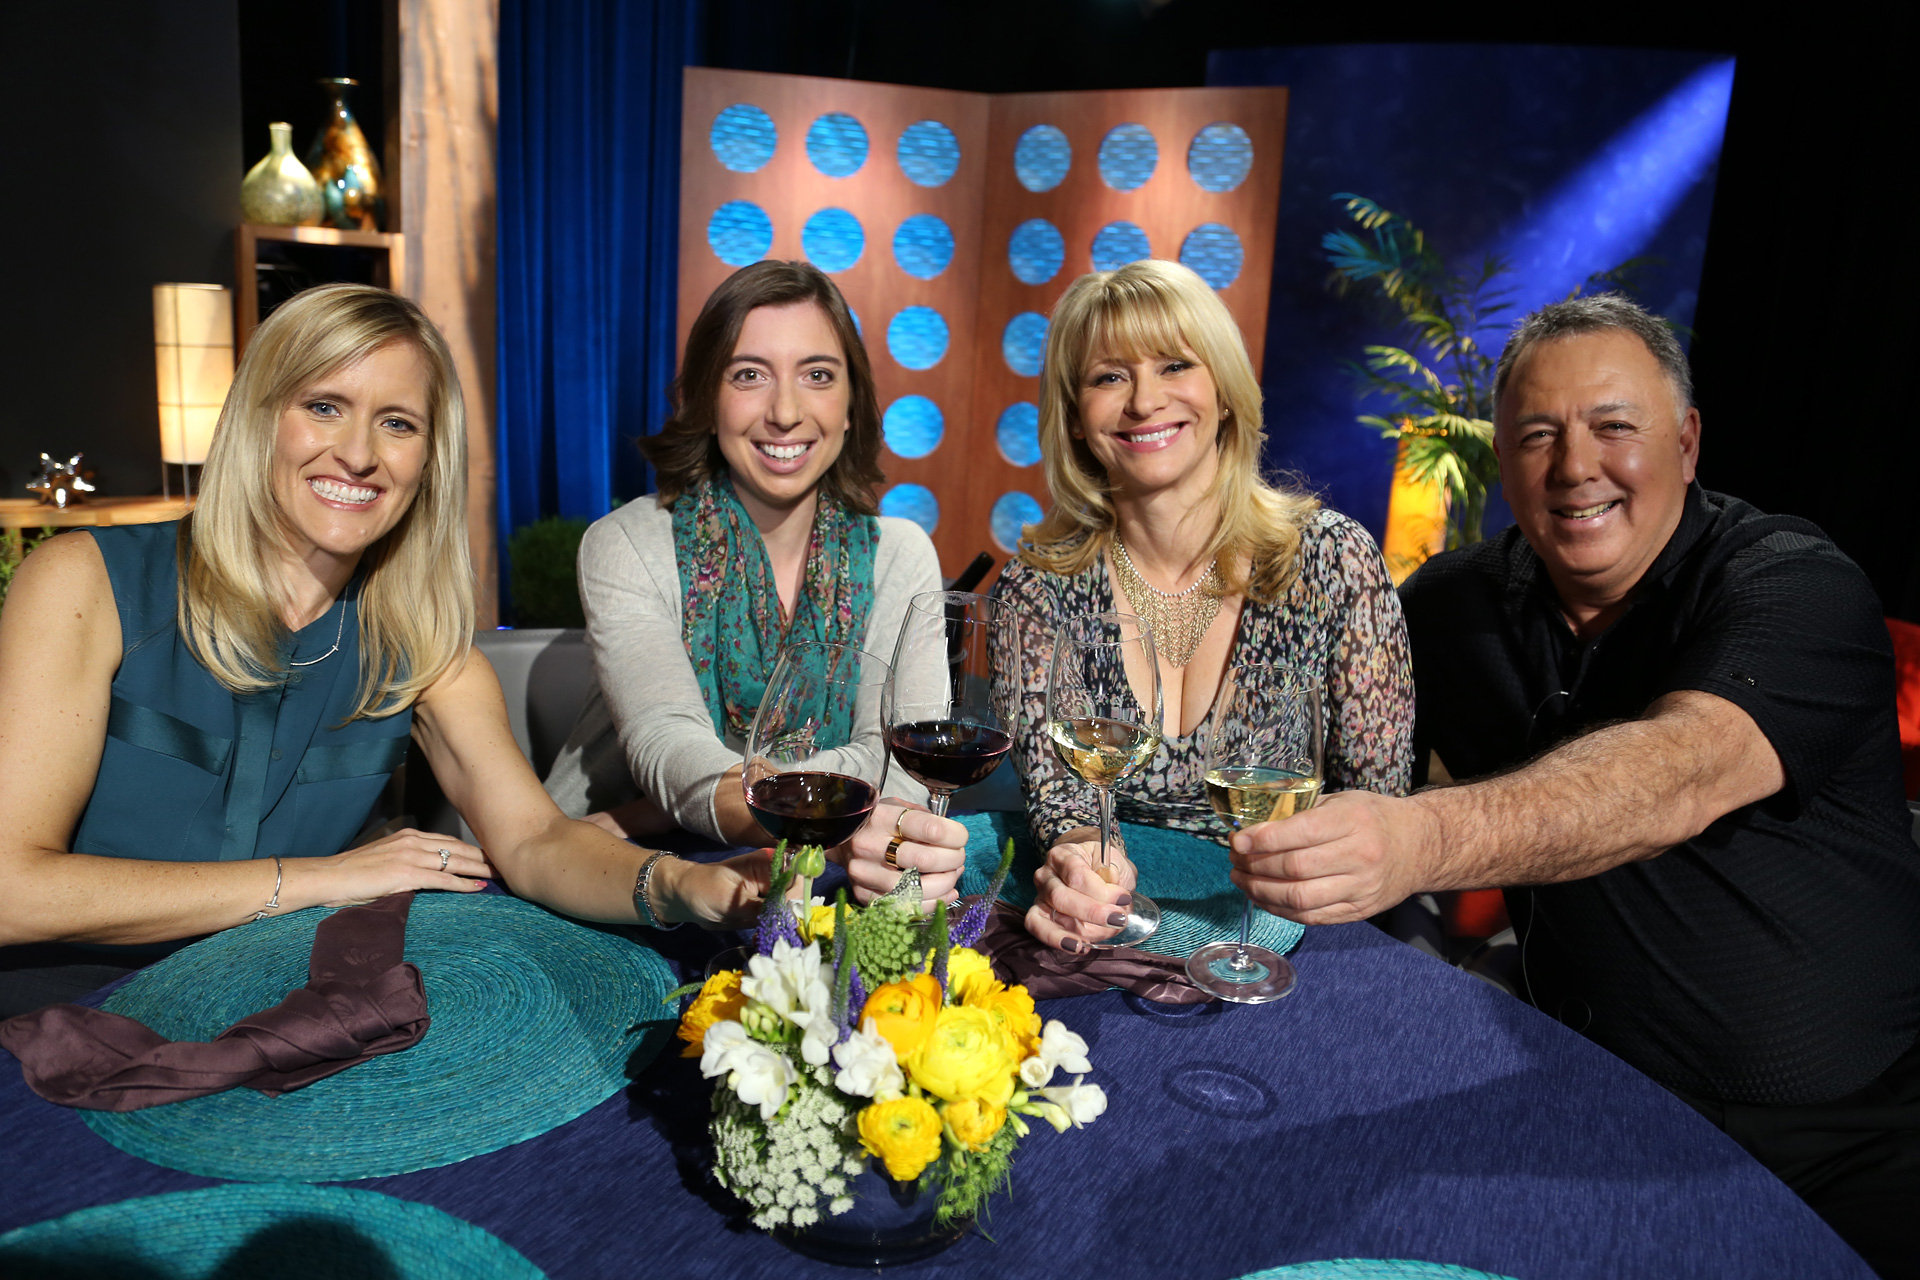 Host Leslie Sbrocco and guests on the set of the episode 10 of season 11.